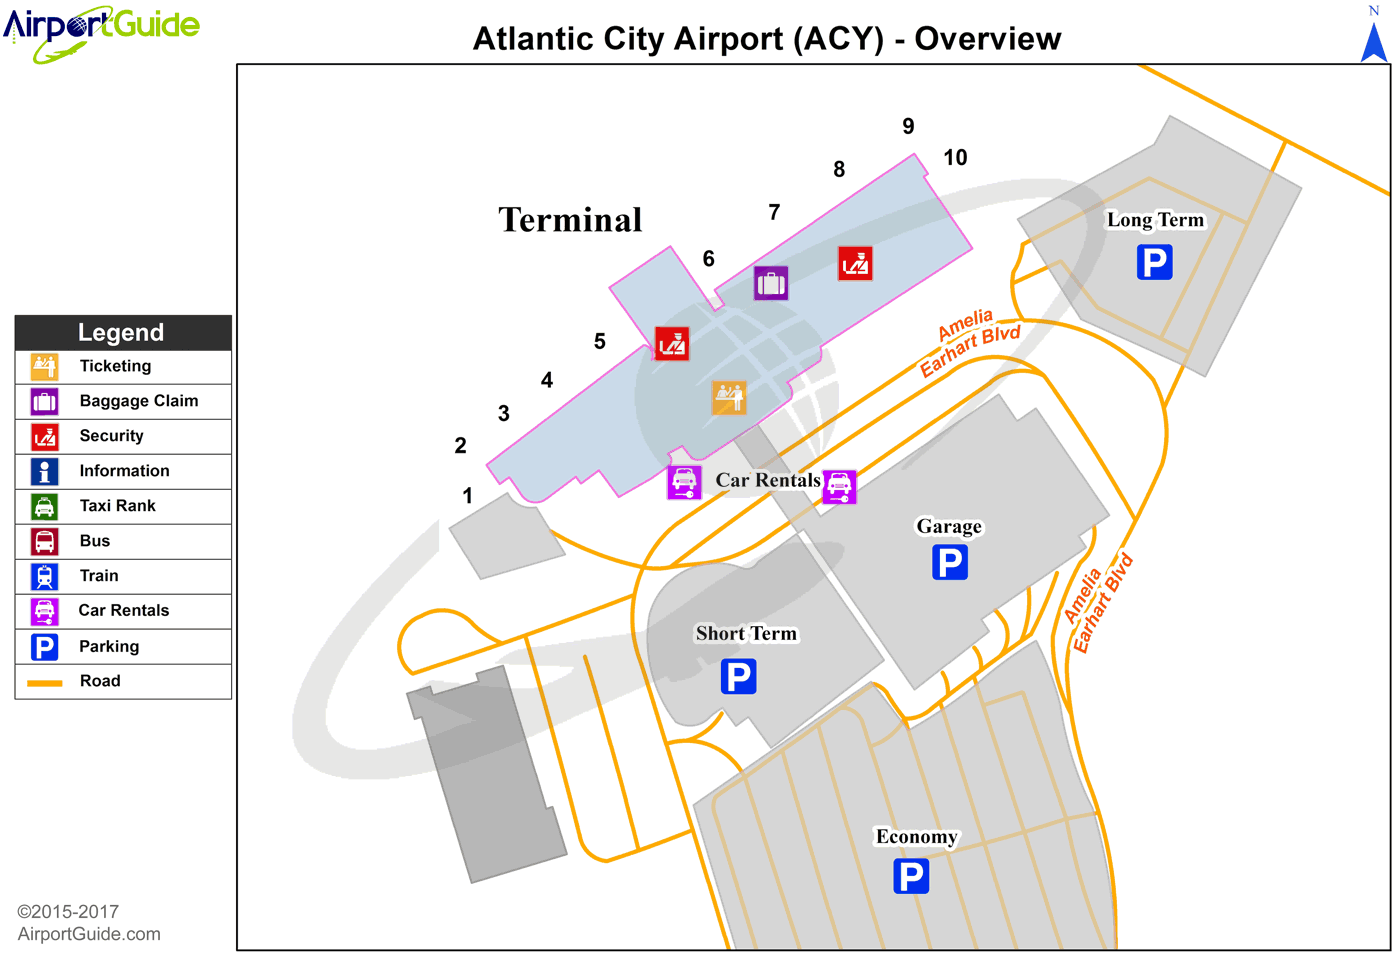 Atlantic City Atlantic City International Acy Airport Terminal Map Overview Airport Guide Atlantic City Airport City